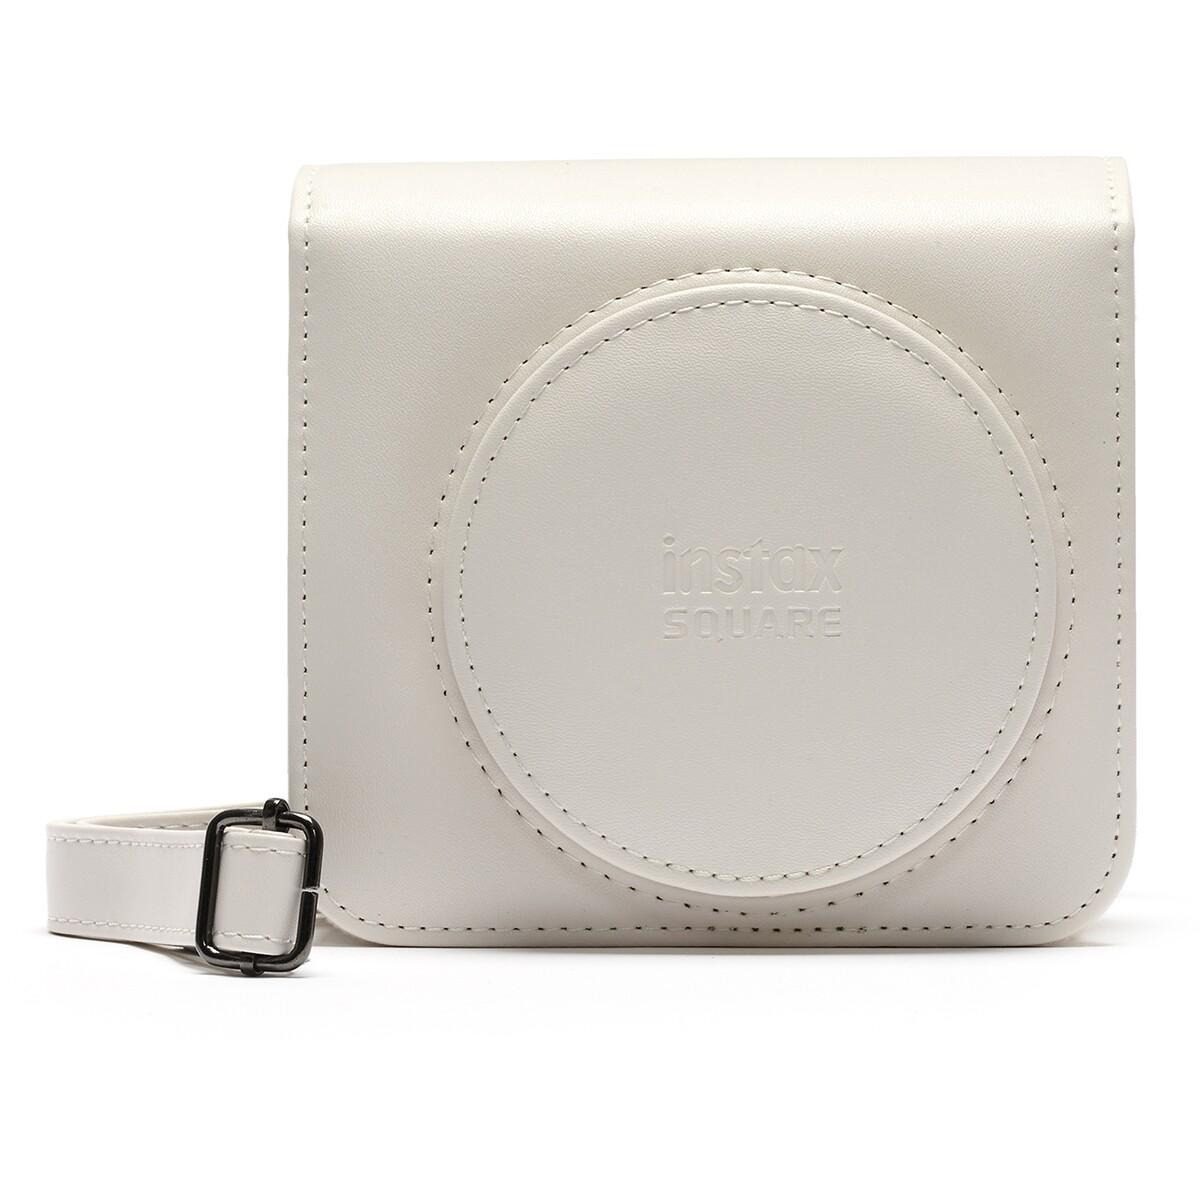 Fujifilm Instax Square SQ1 Camera Case – Chalk White